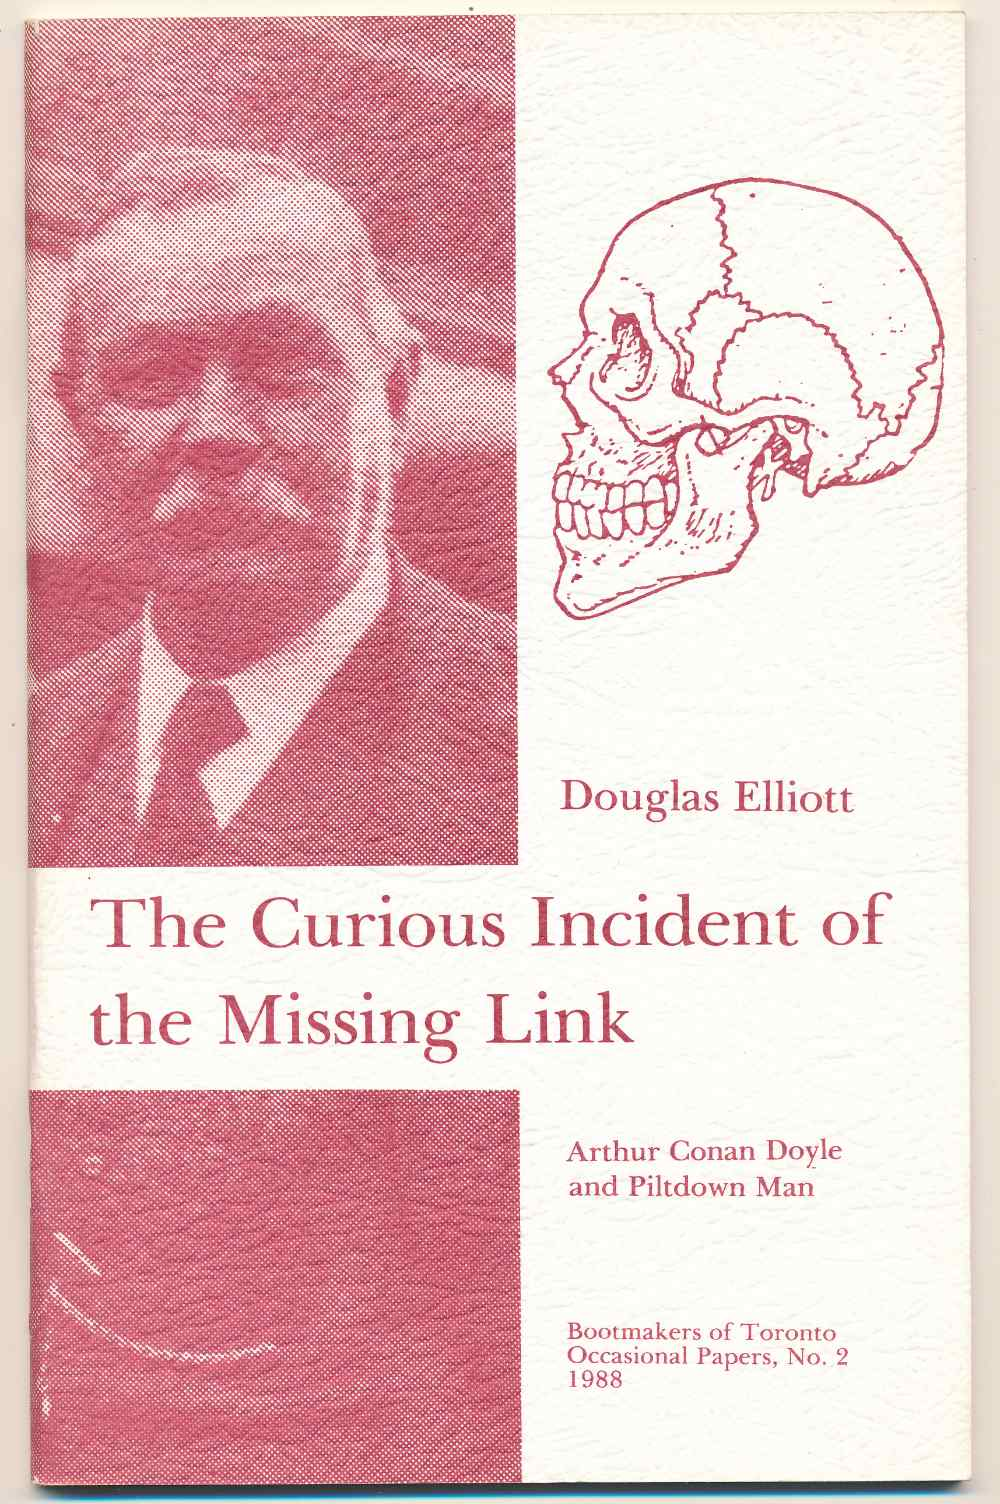 The curious incident of the missing link : Arthur Conan Doyle and the Piltdown man